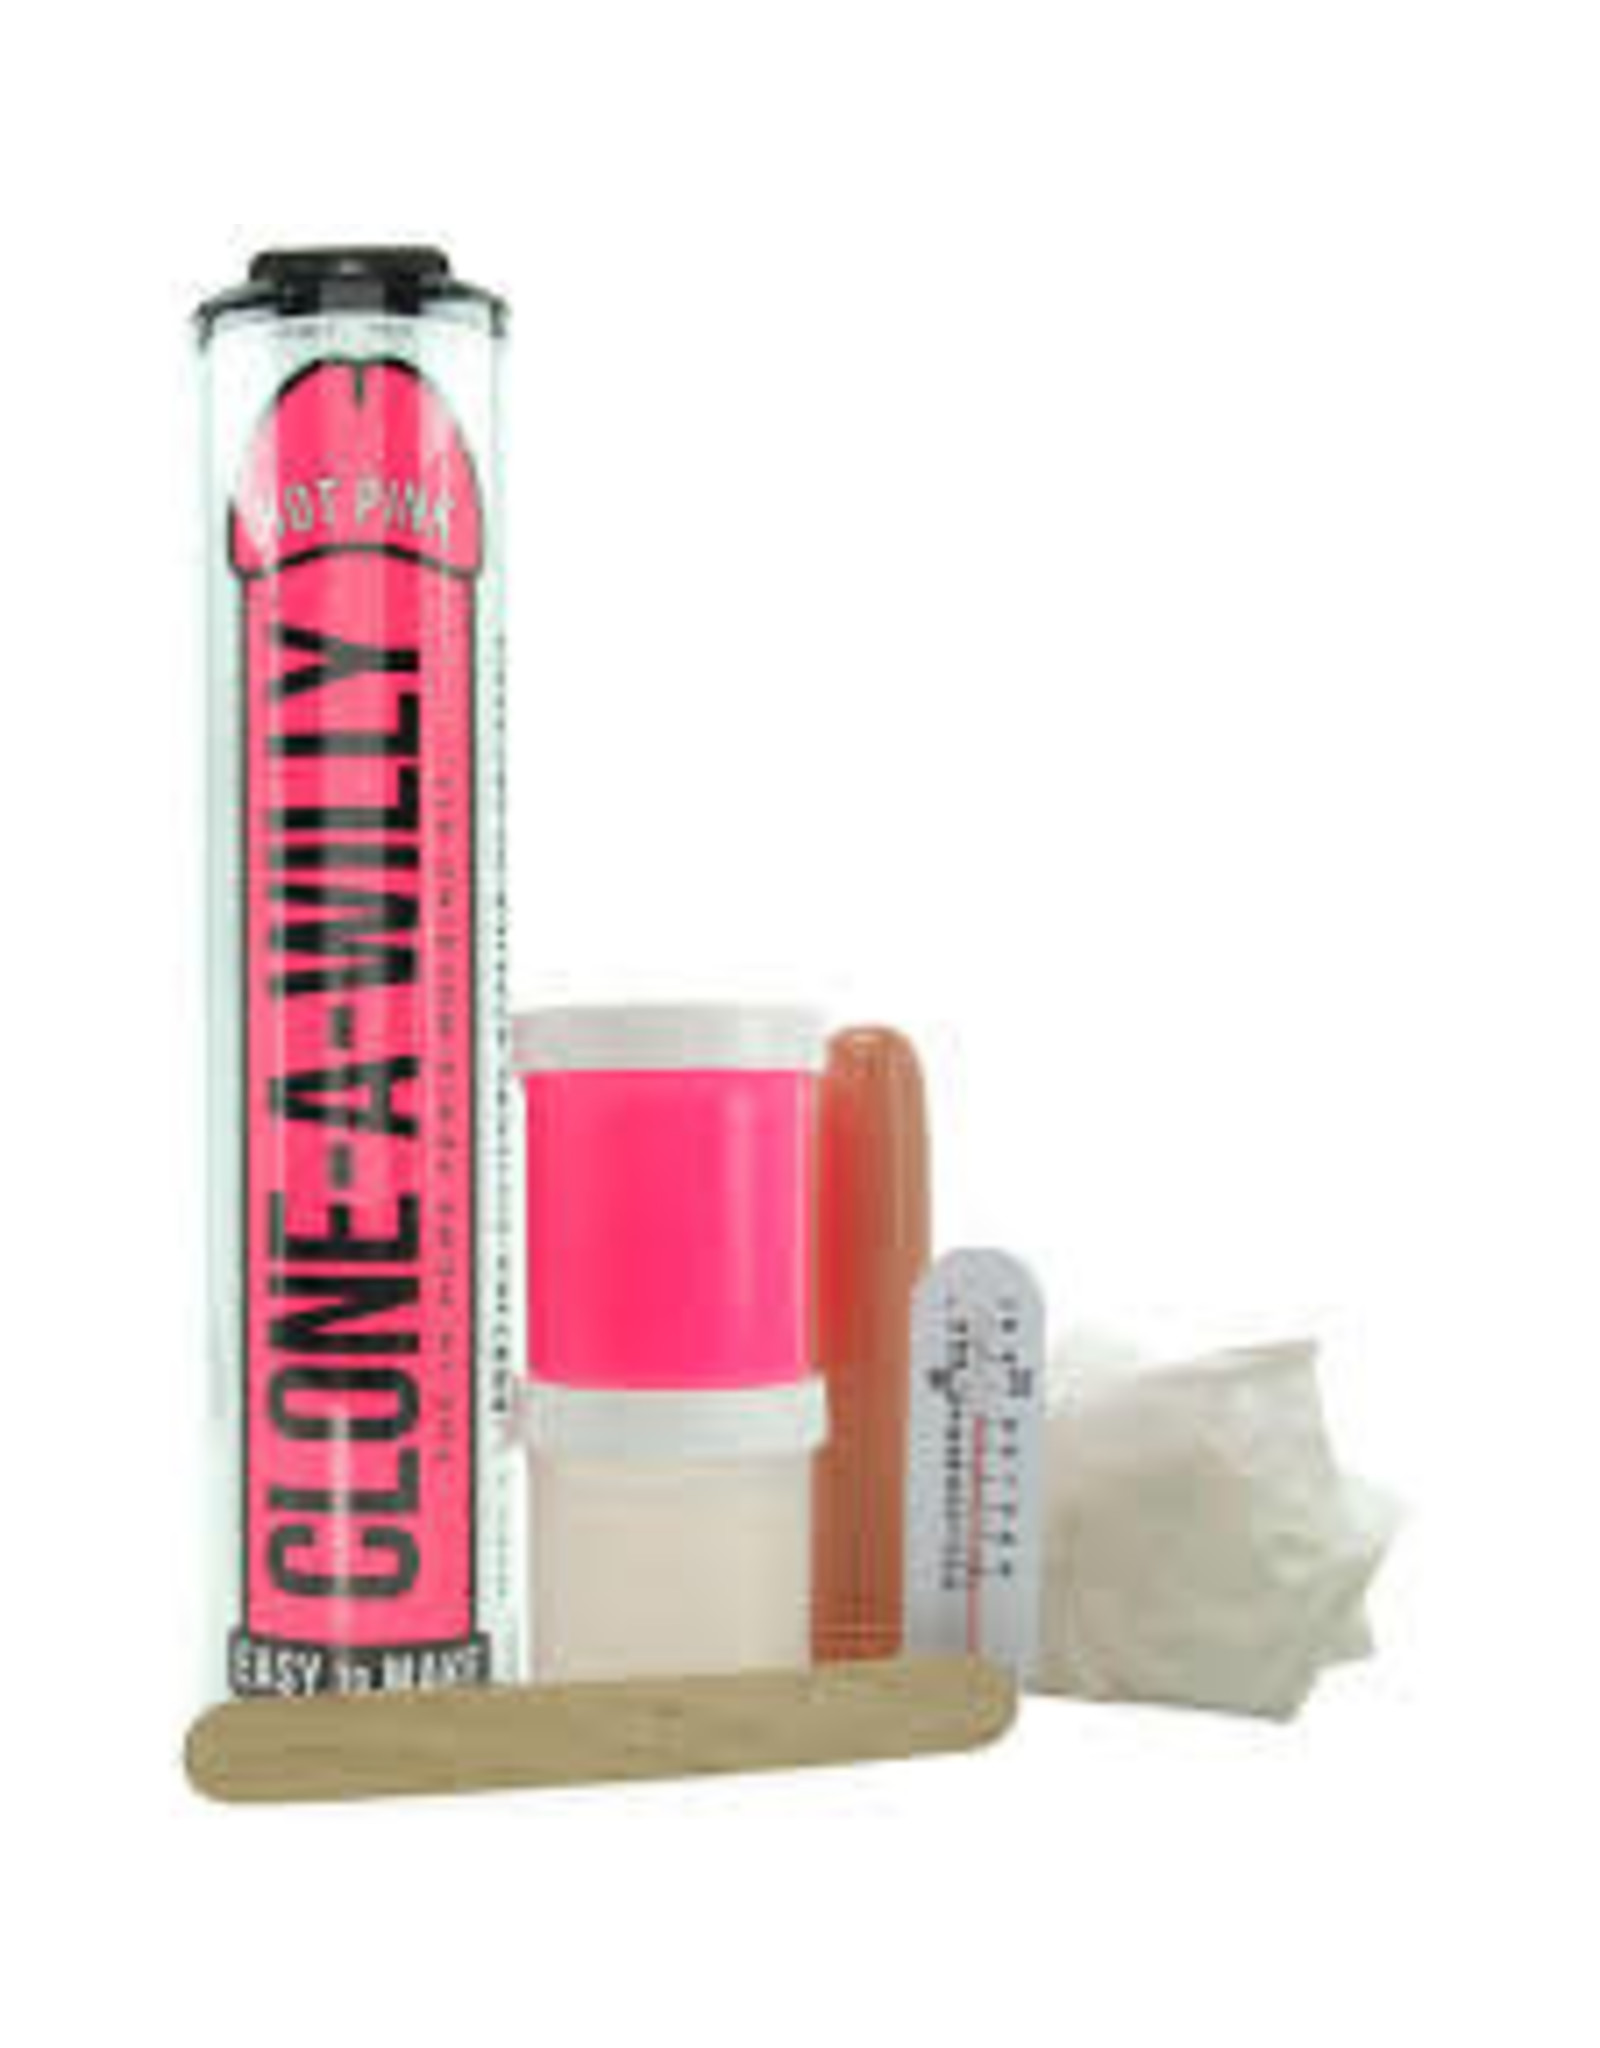 Empire Labs Clone A Willy -Vibrating -  Hot Pink